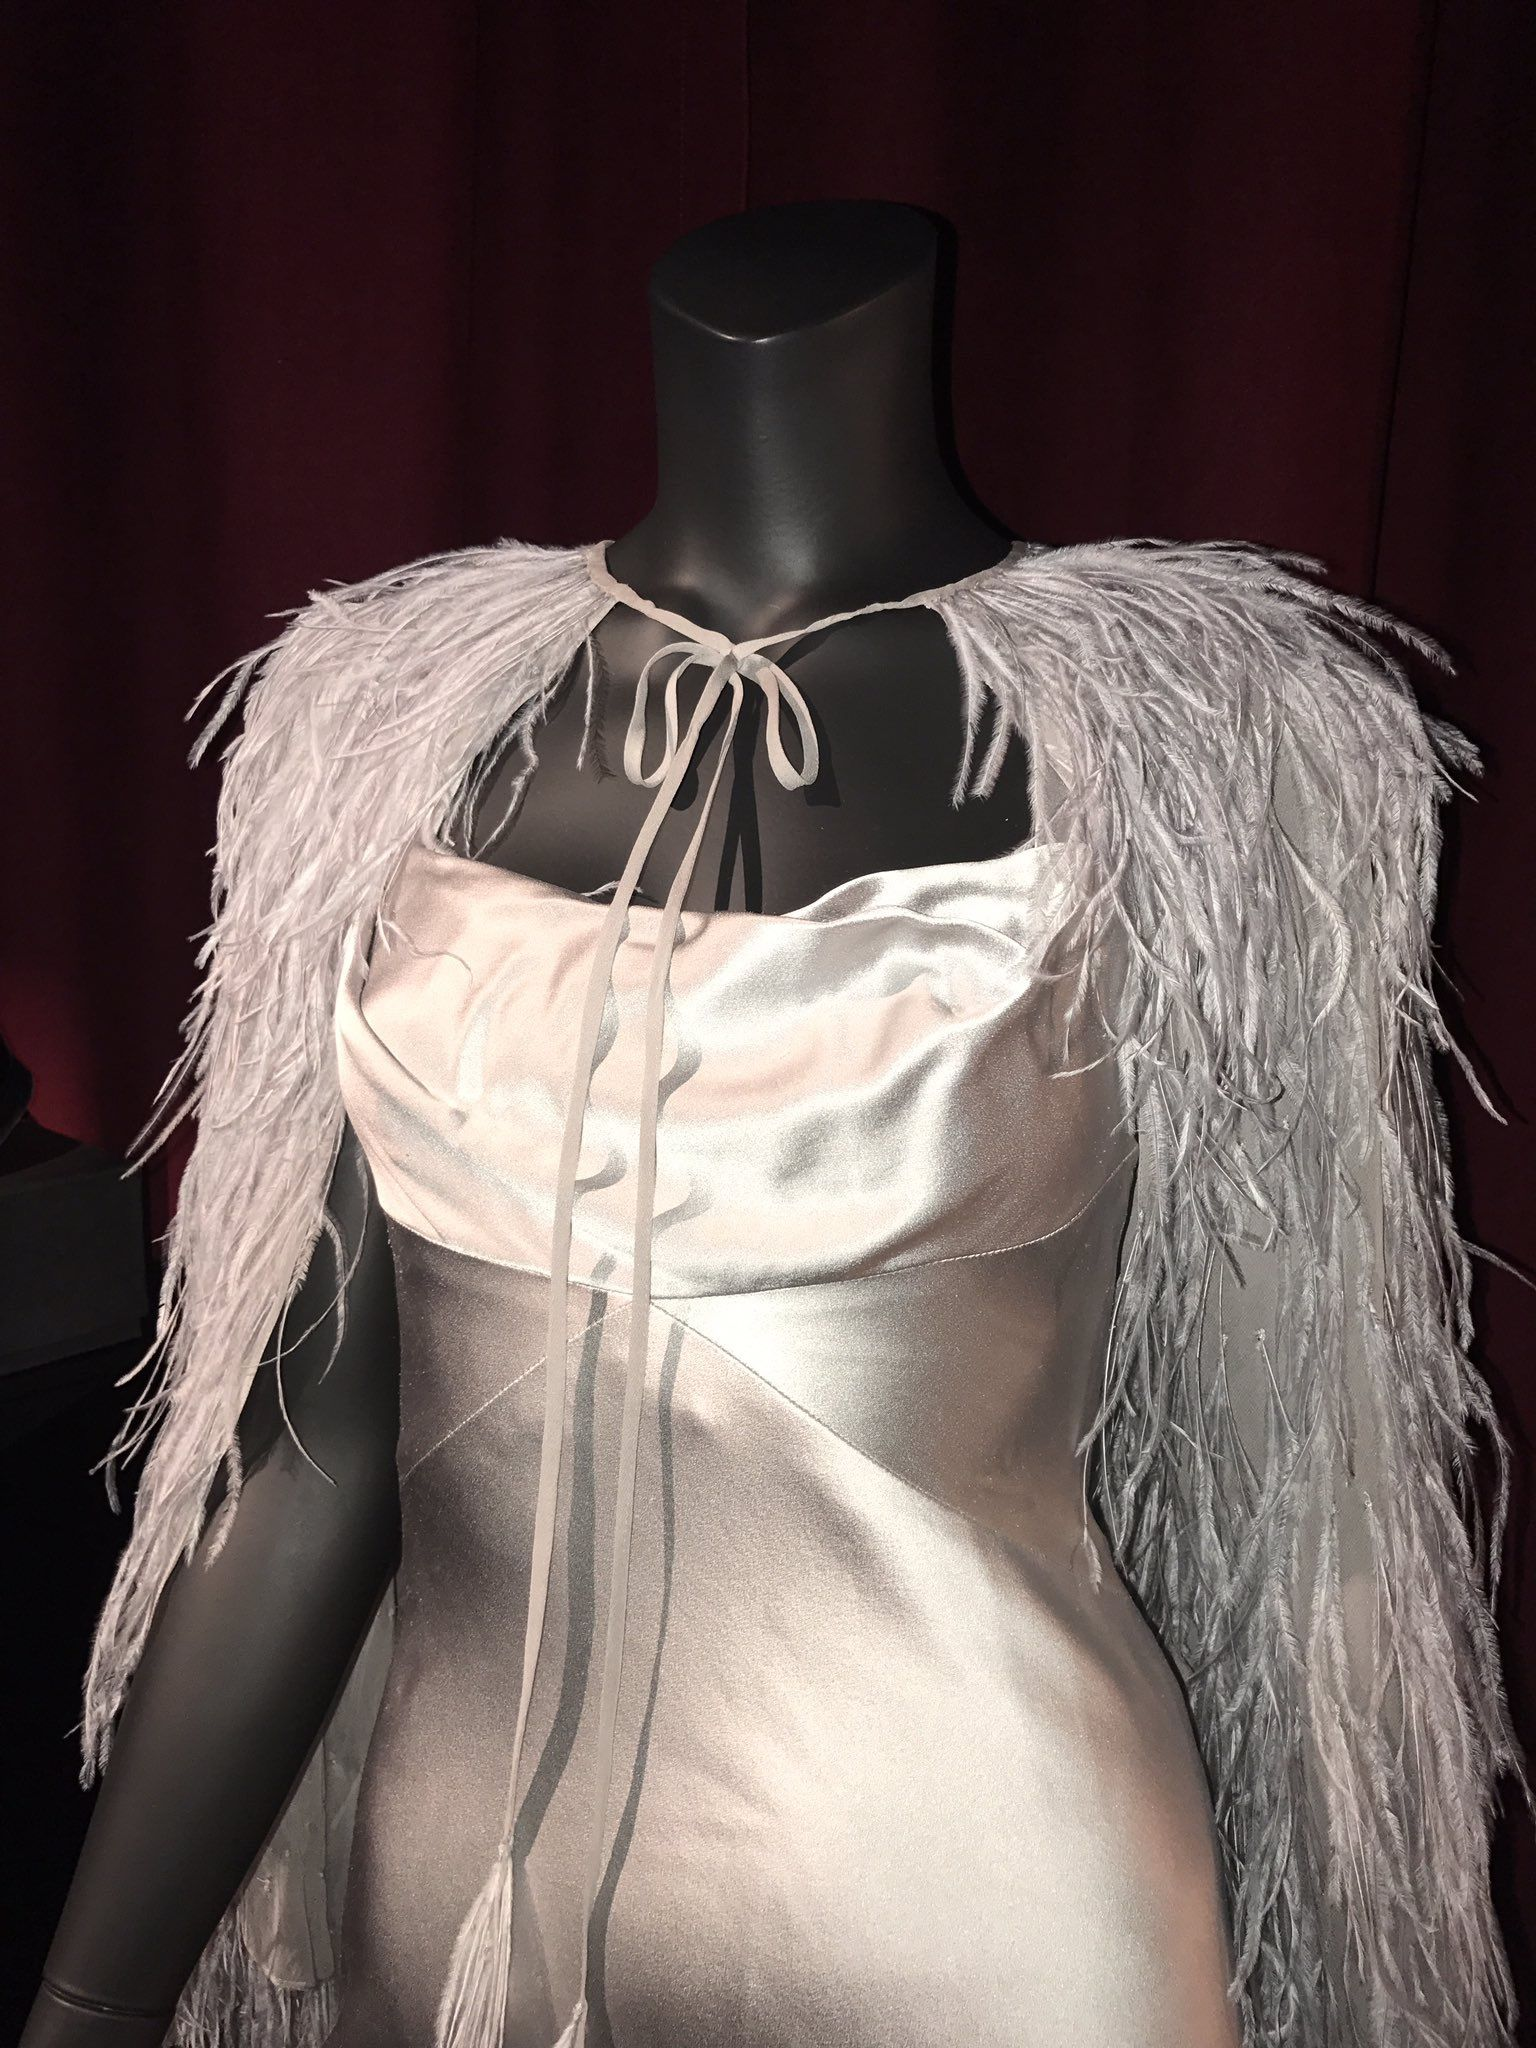 A close up of the gown that Anastasia wears to the masquerade ball ...